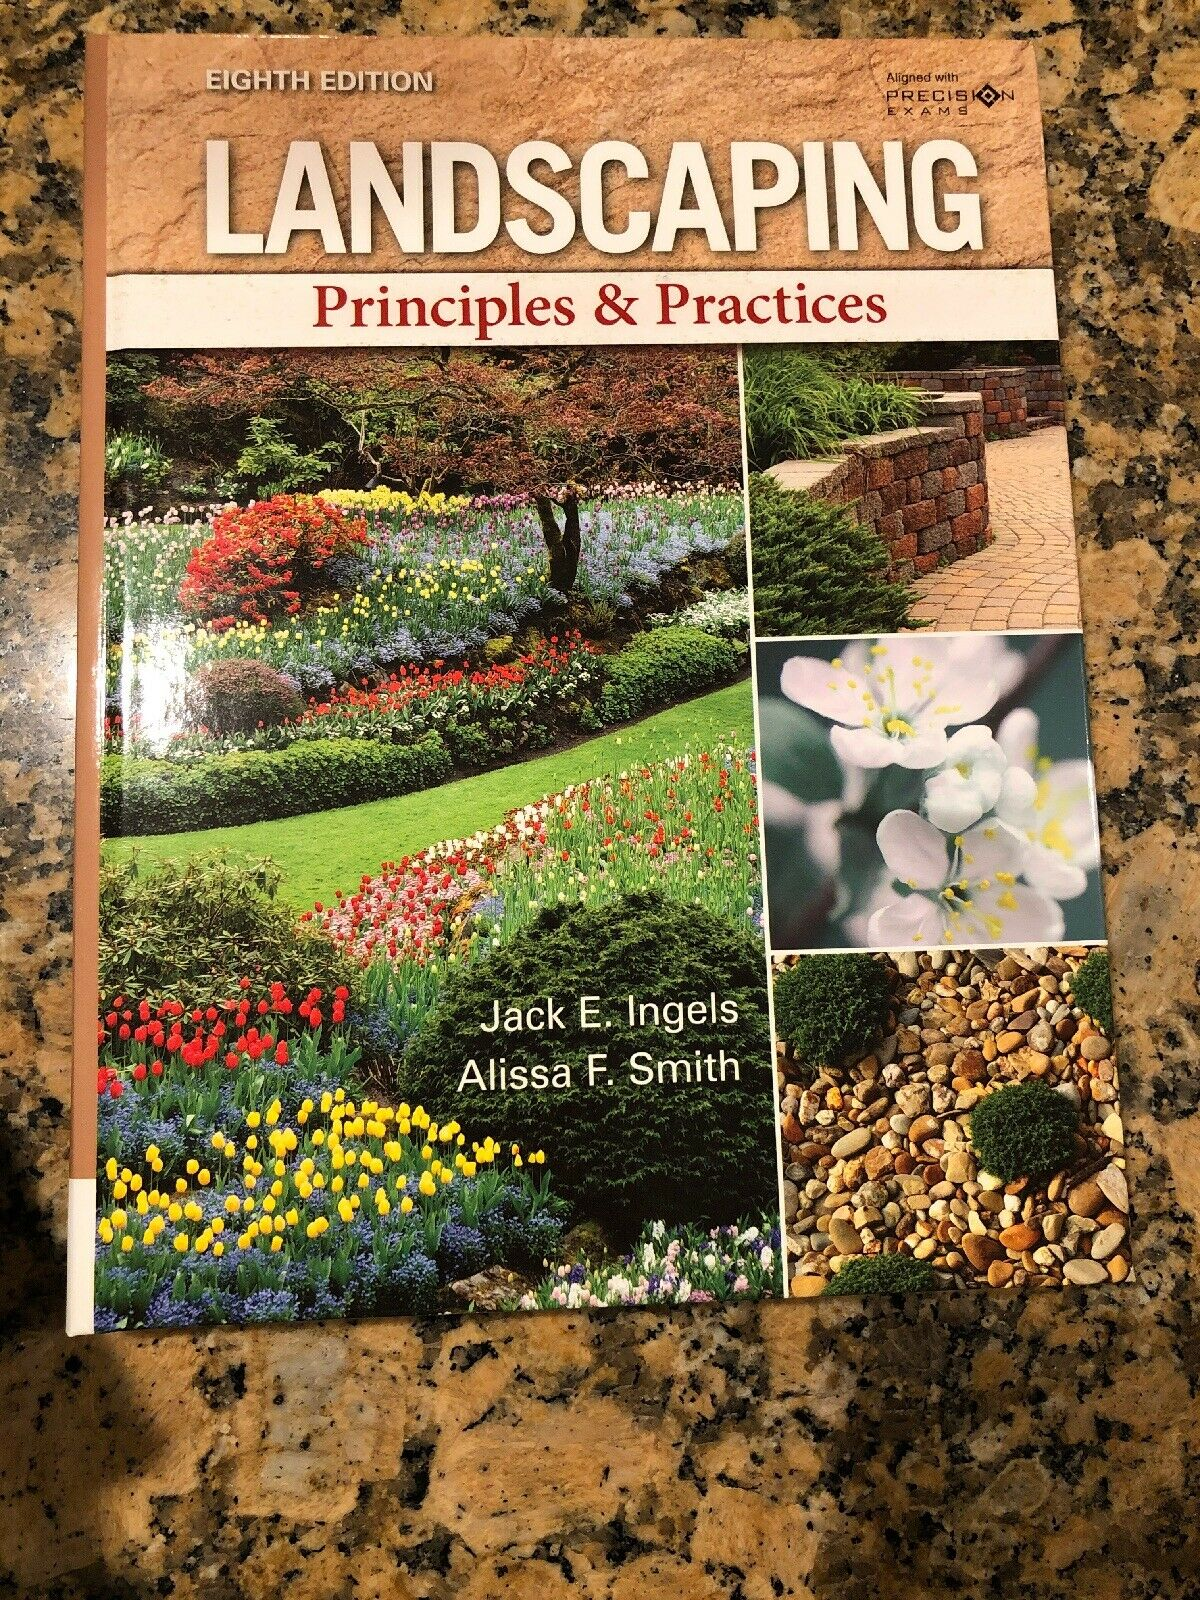 Landscaping Principles And Practices By Jack Ingels And Alissa Smith 2018 Hardcover Revised Edition For Sale Online Ebay